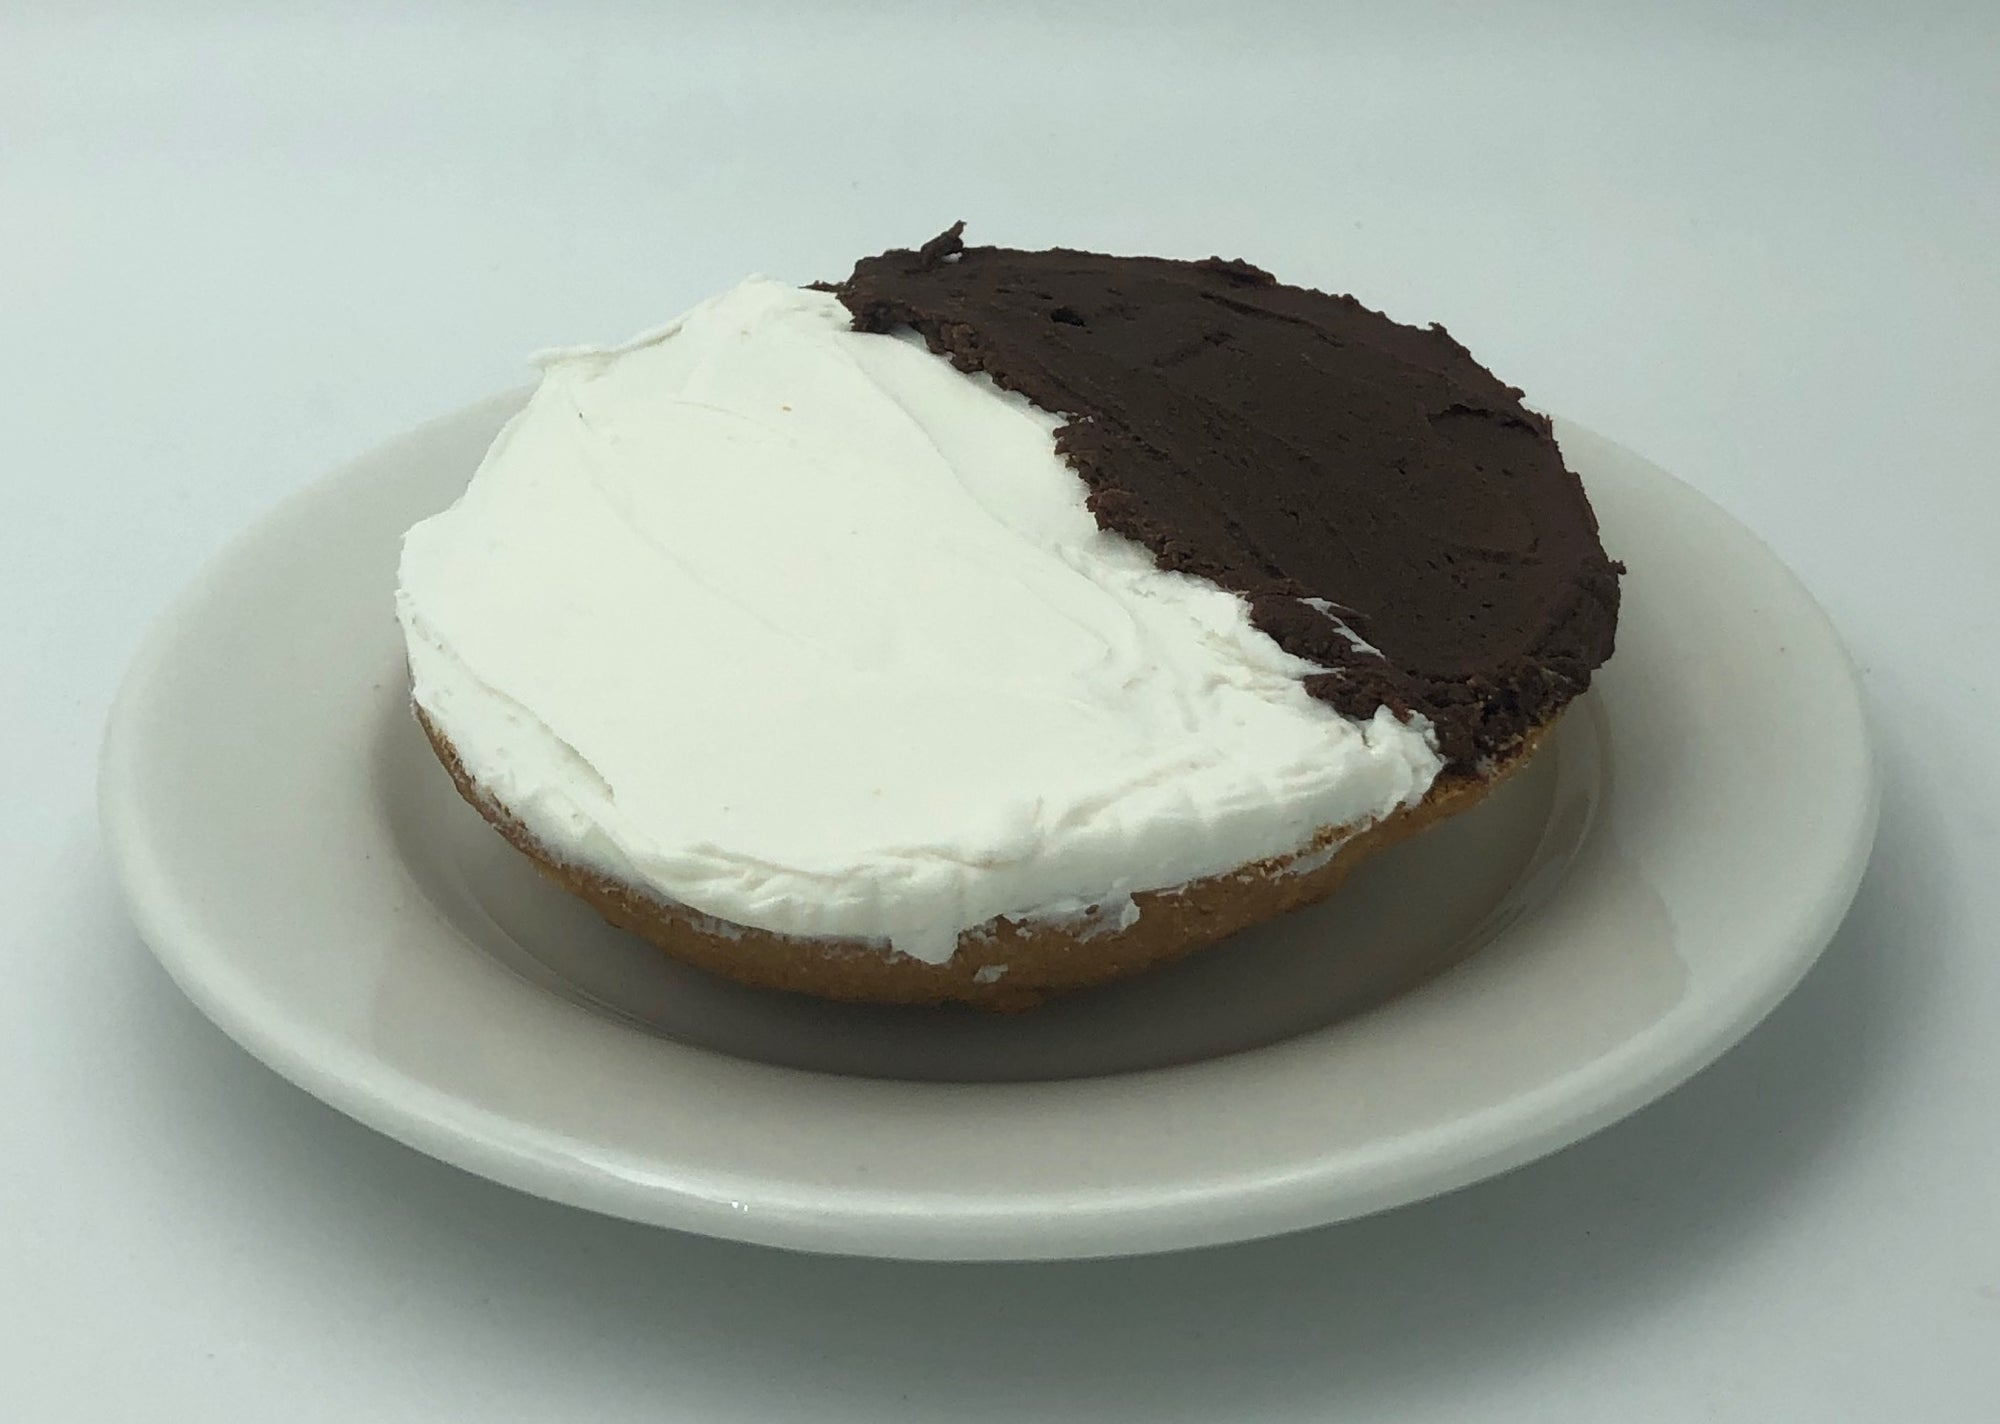 Half Moon or Black and White cookie